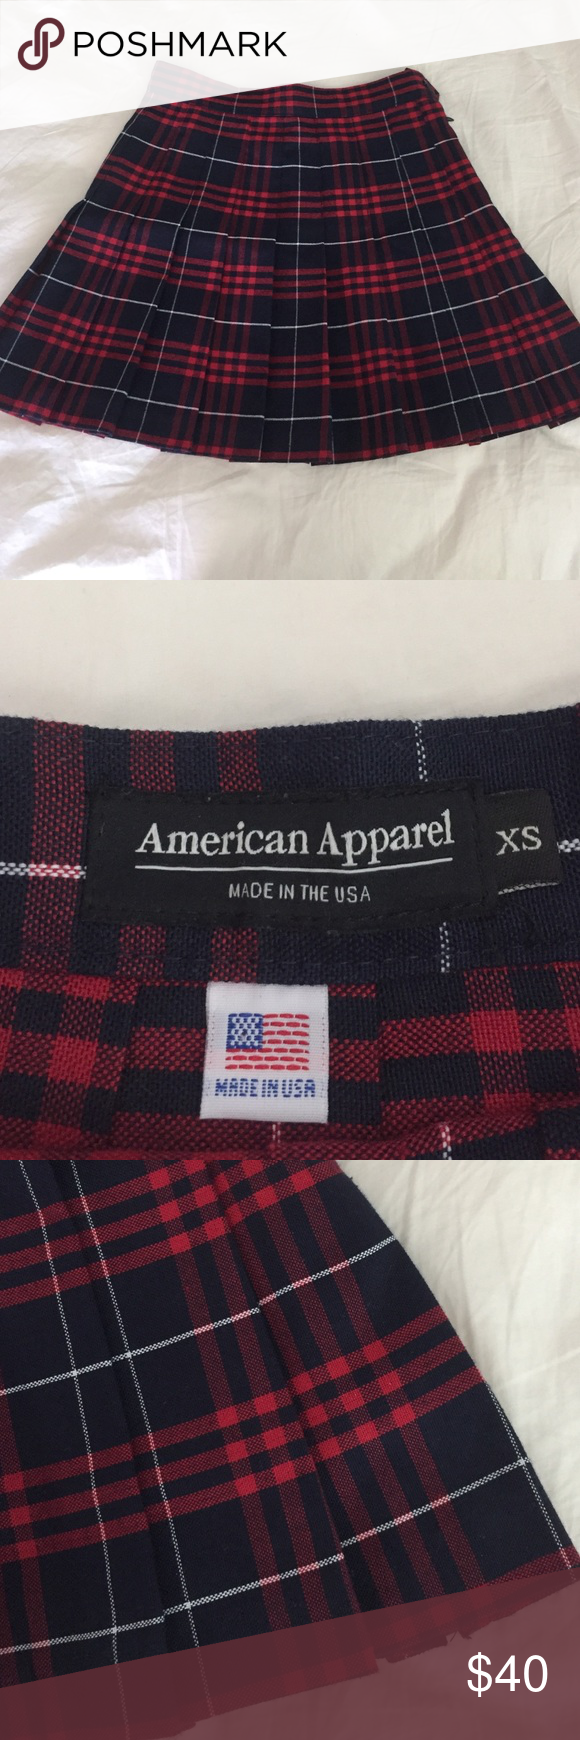 33b6b1a291 American apparel Matilda plaid skirt AA plaid pleated tennis skirt. Blue  and red, size XS. Great condition. American Apparel Skirts Mini